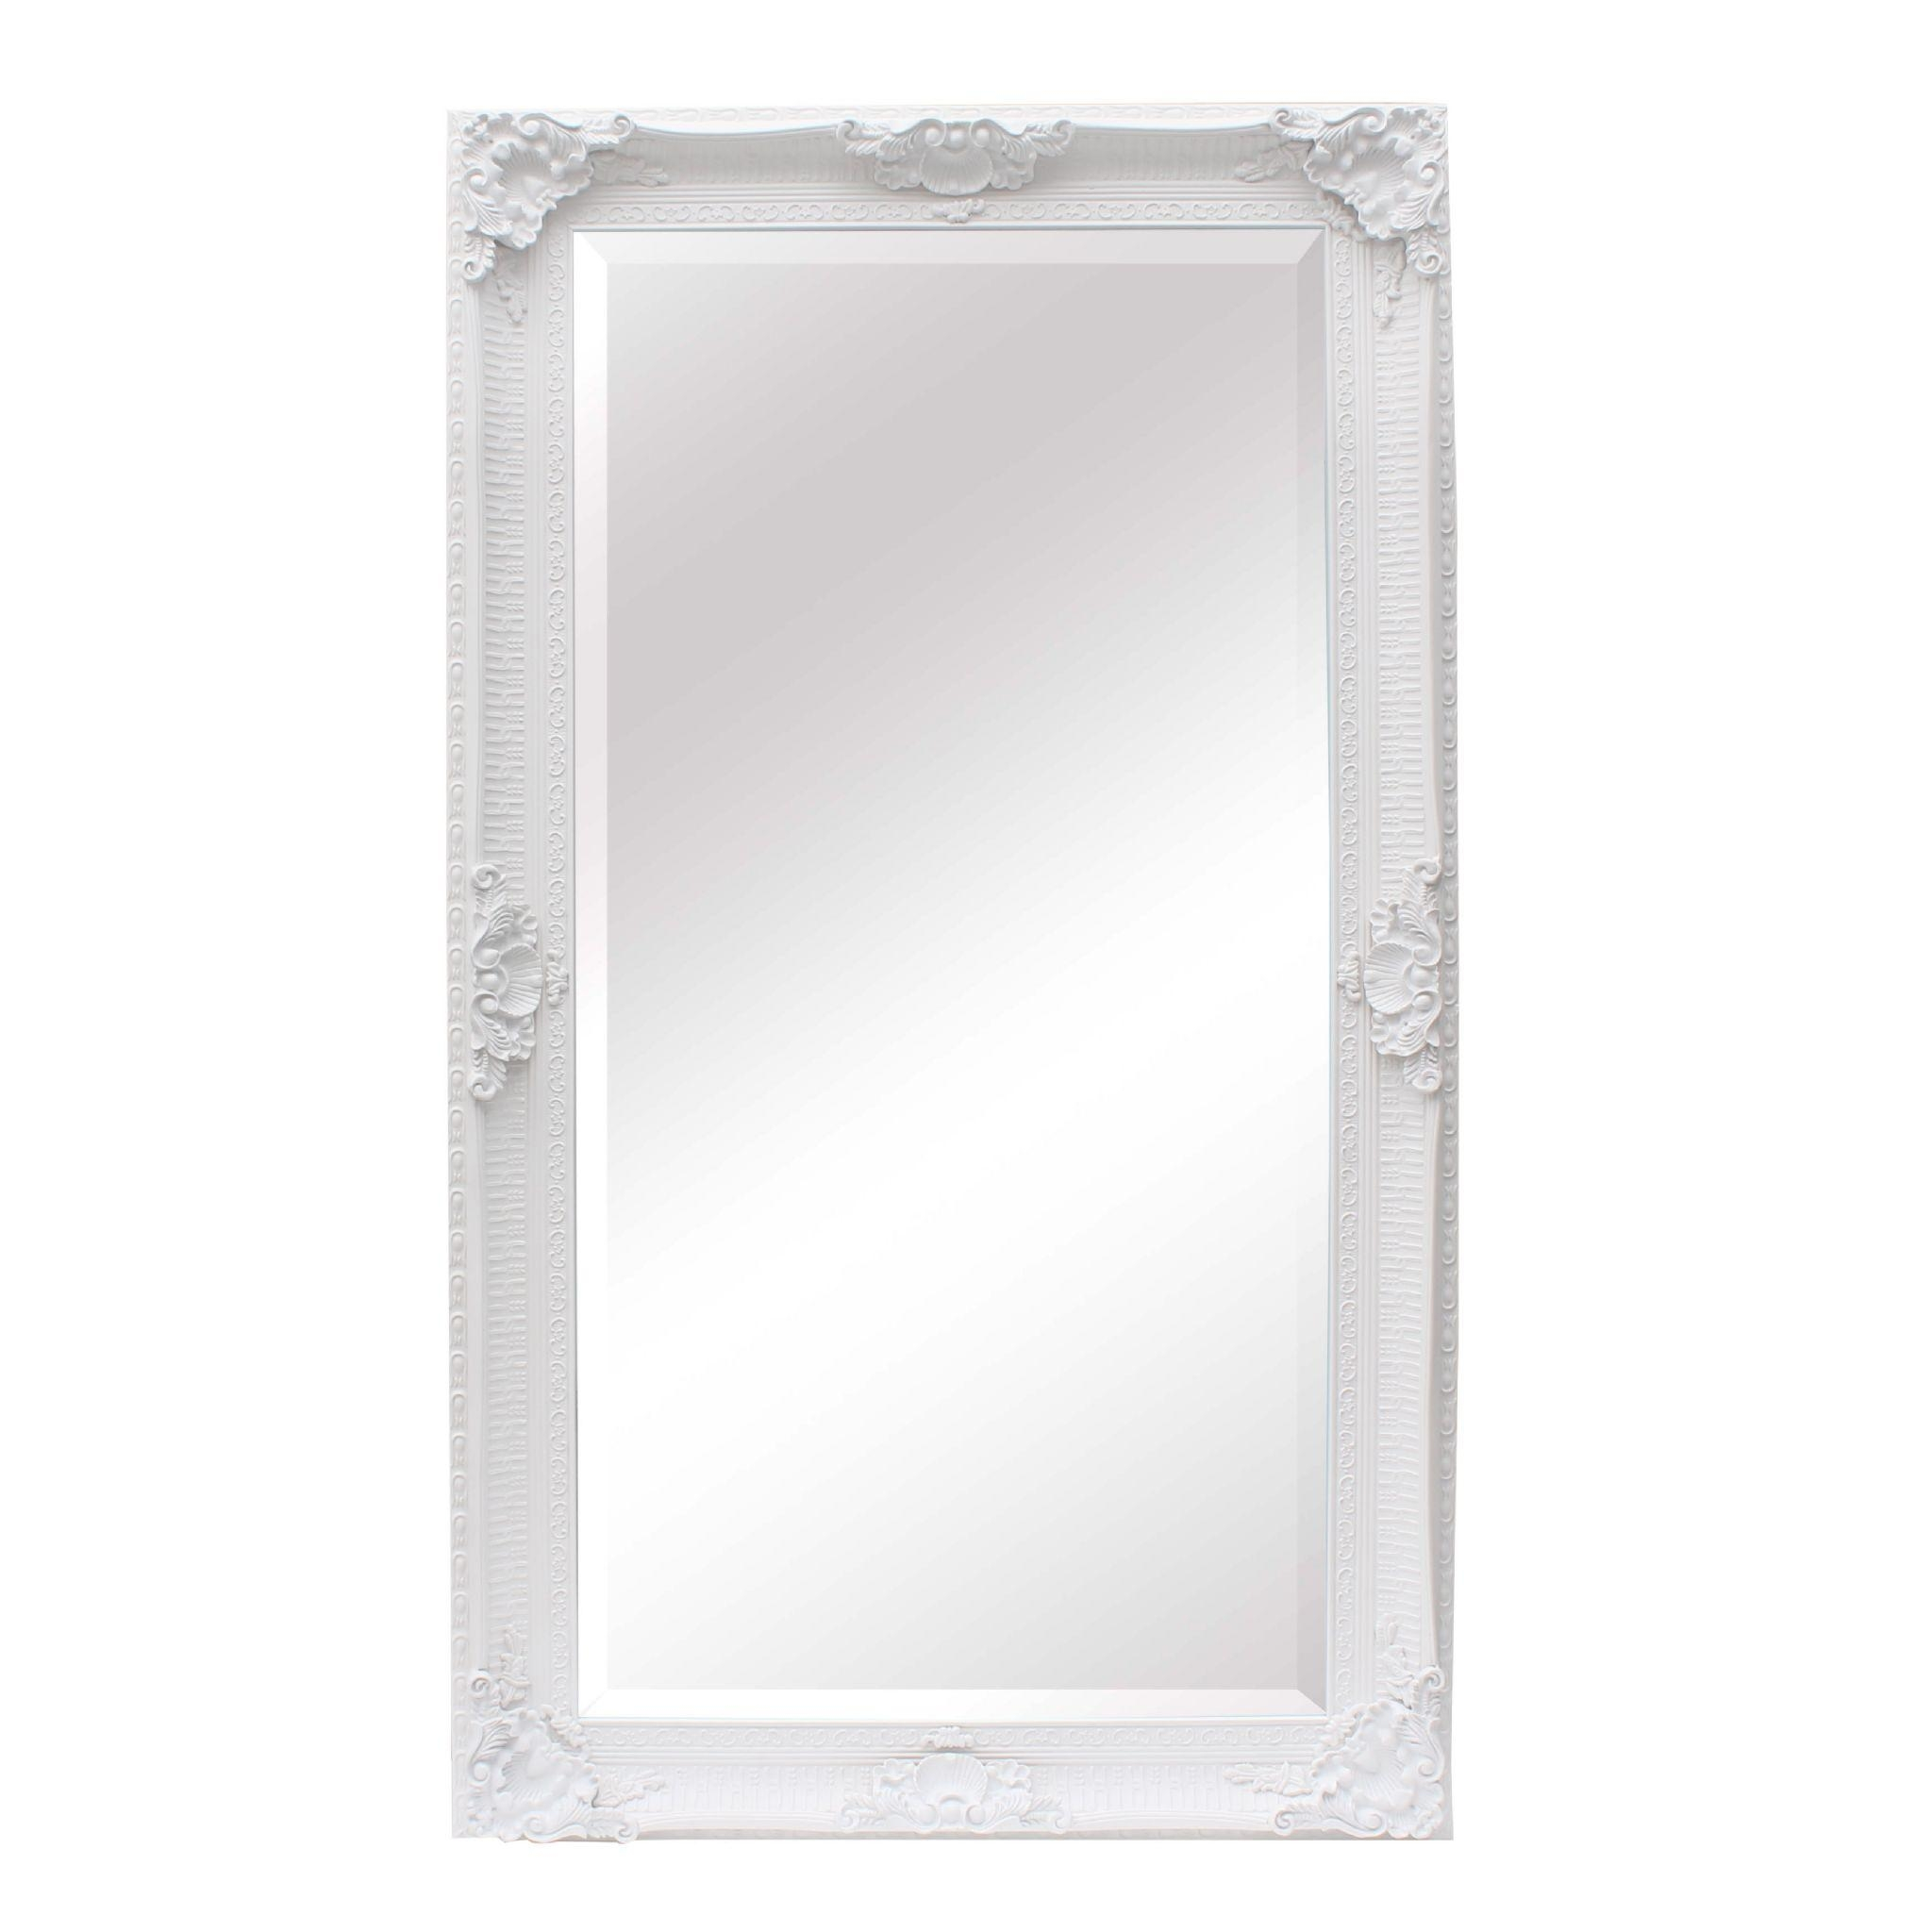 Extra Large Ornate Mirrors | Tlzholdings With Regard To Extra Large Ornate Mirror (Image 7 of 20)